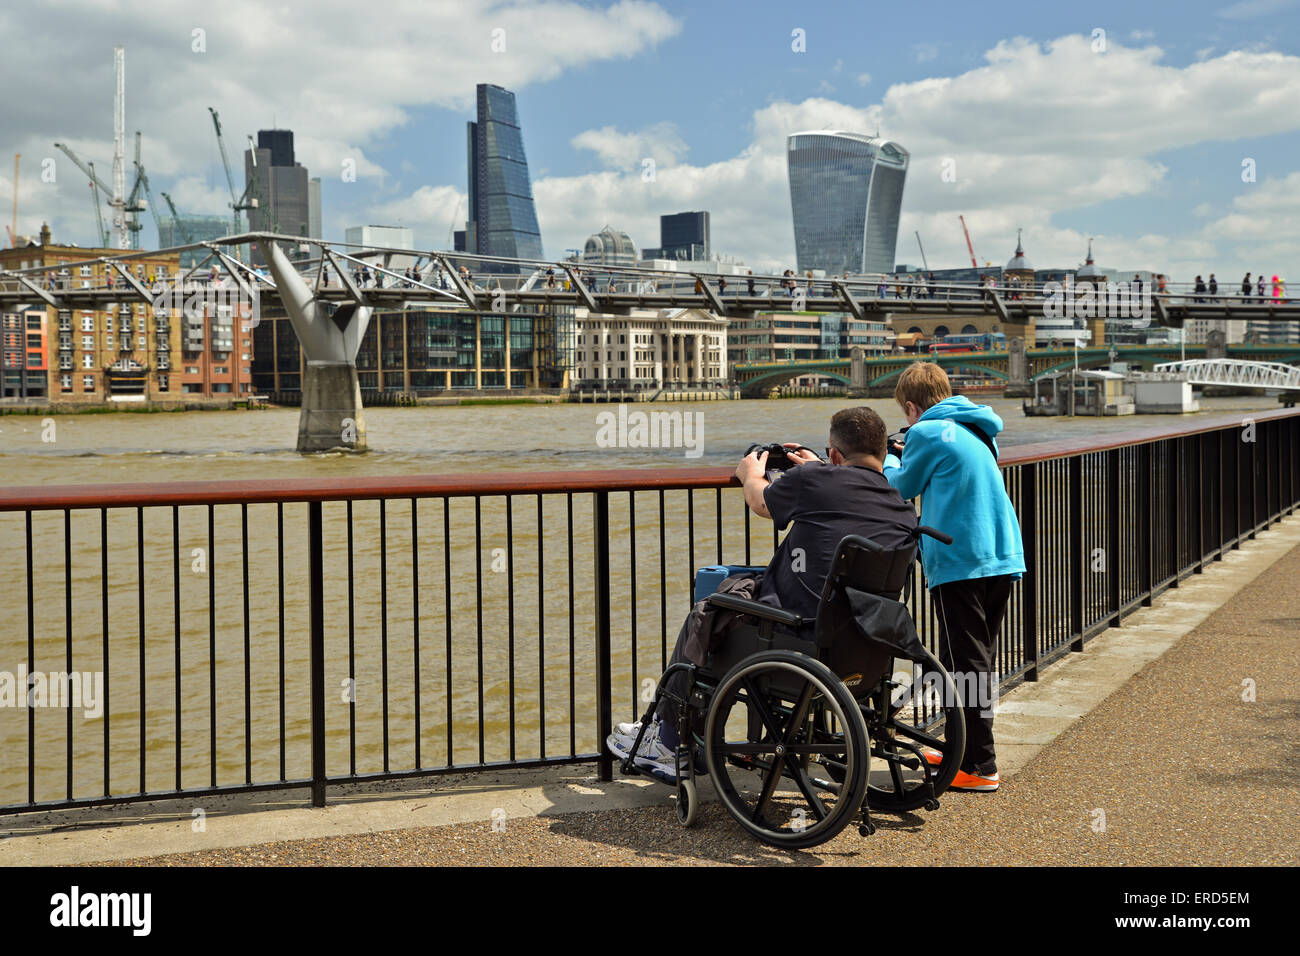 People taking pictures of the Millennium Bridge and the City beside the River Thames  London UK - Stock Image